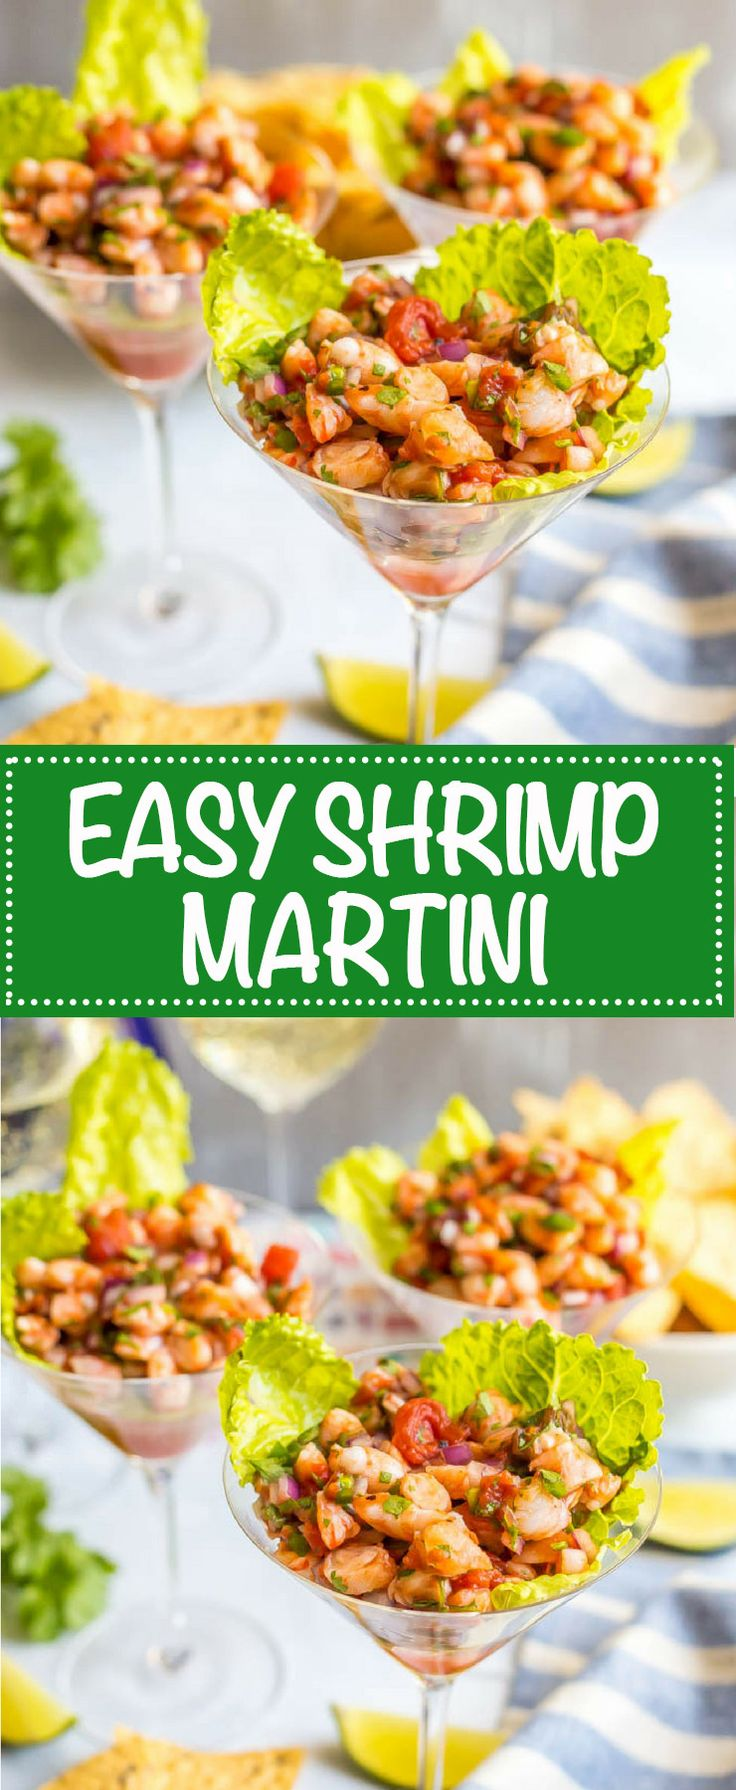 Shrimp martini appetizer is an easy shrimp salsa dip that's perfect for a fun and fancy appetizer with friends and family!   www.familyfoodonthetable.com